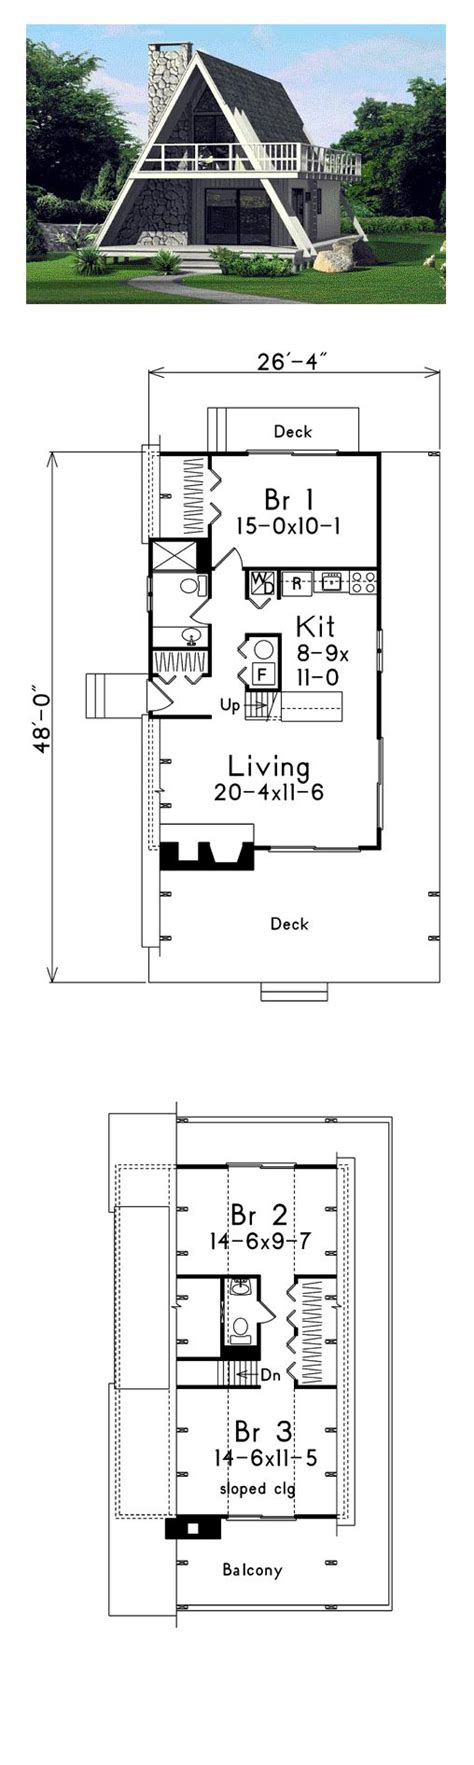 a frame cabin floor plans with loft a frame cabin floor plans with loft so replica houses luxamcc luxamcc